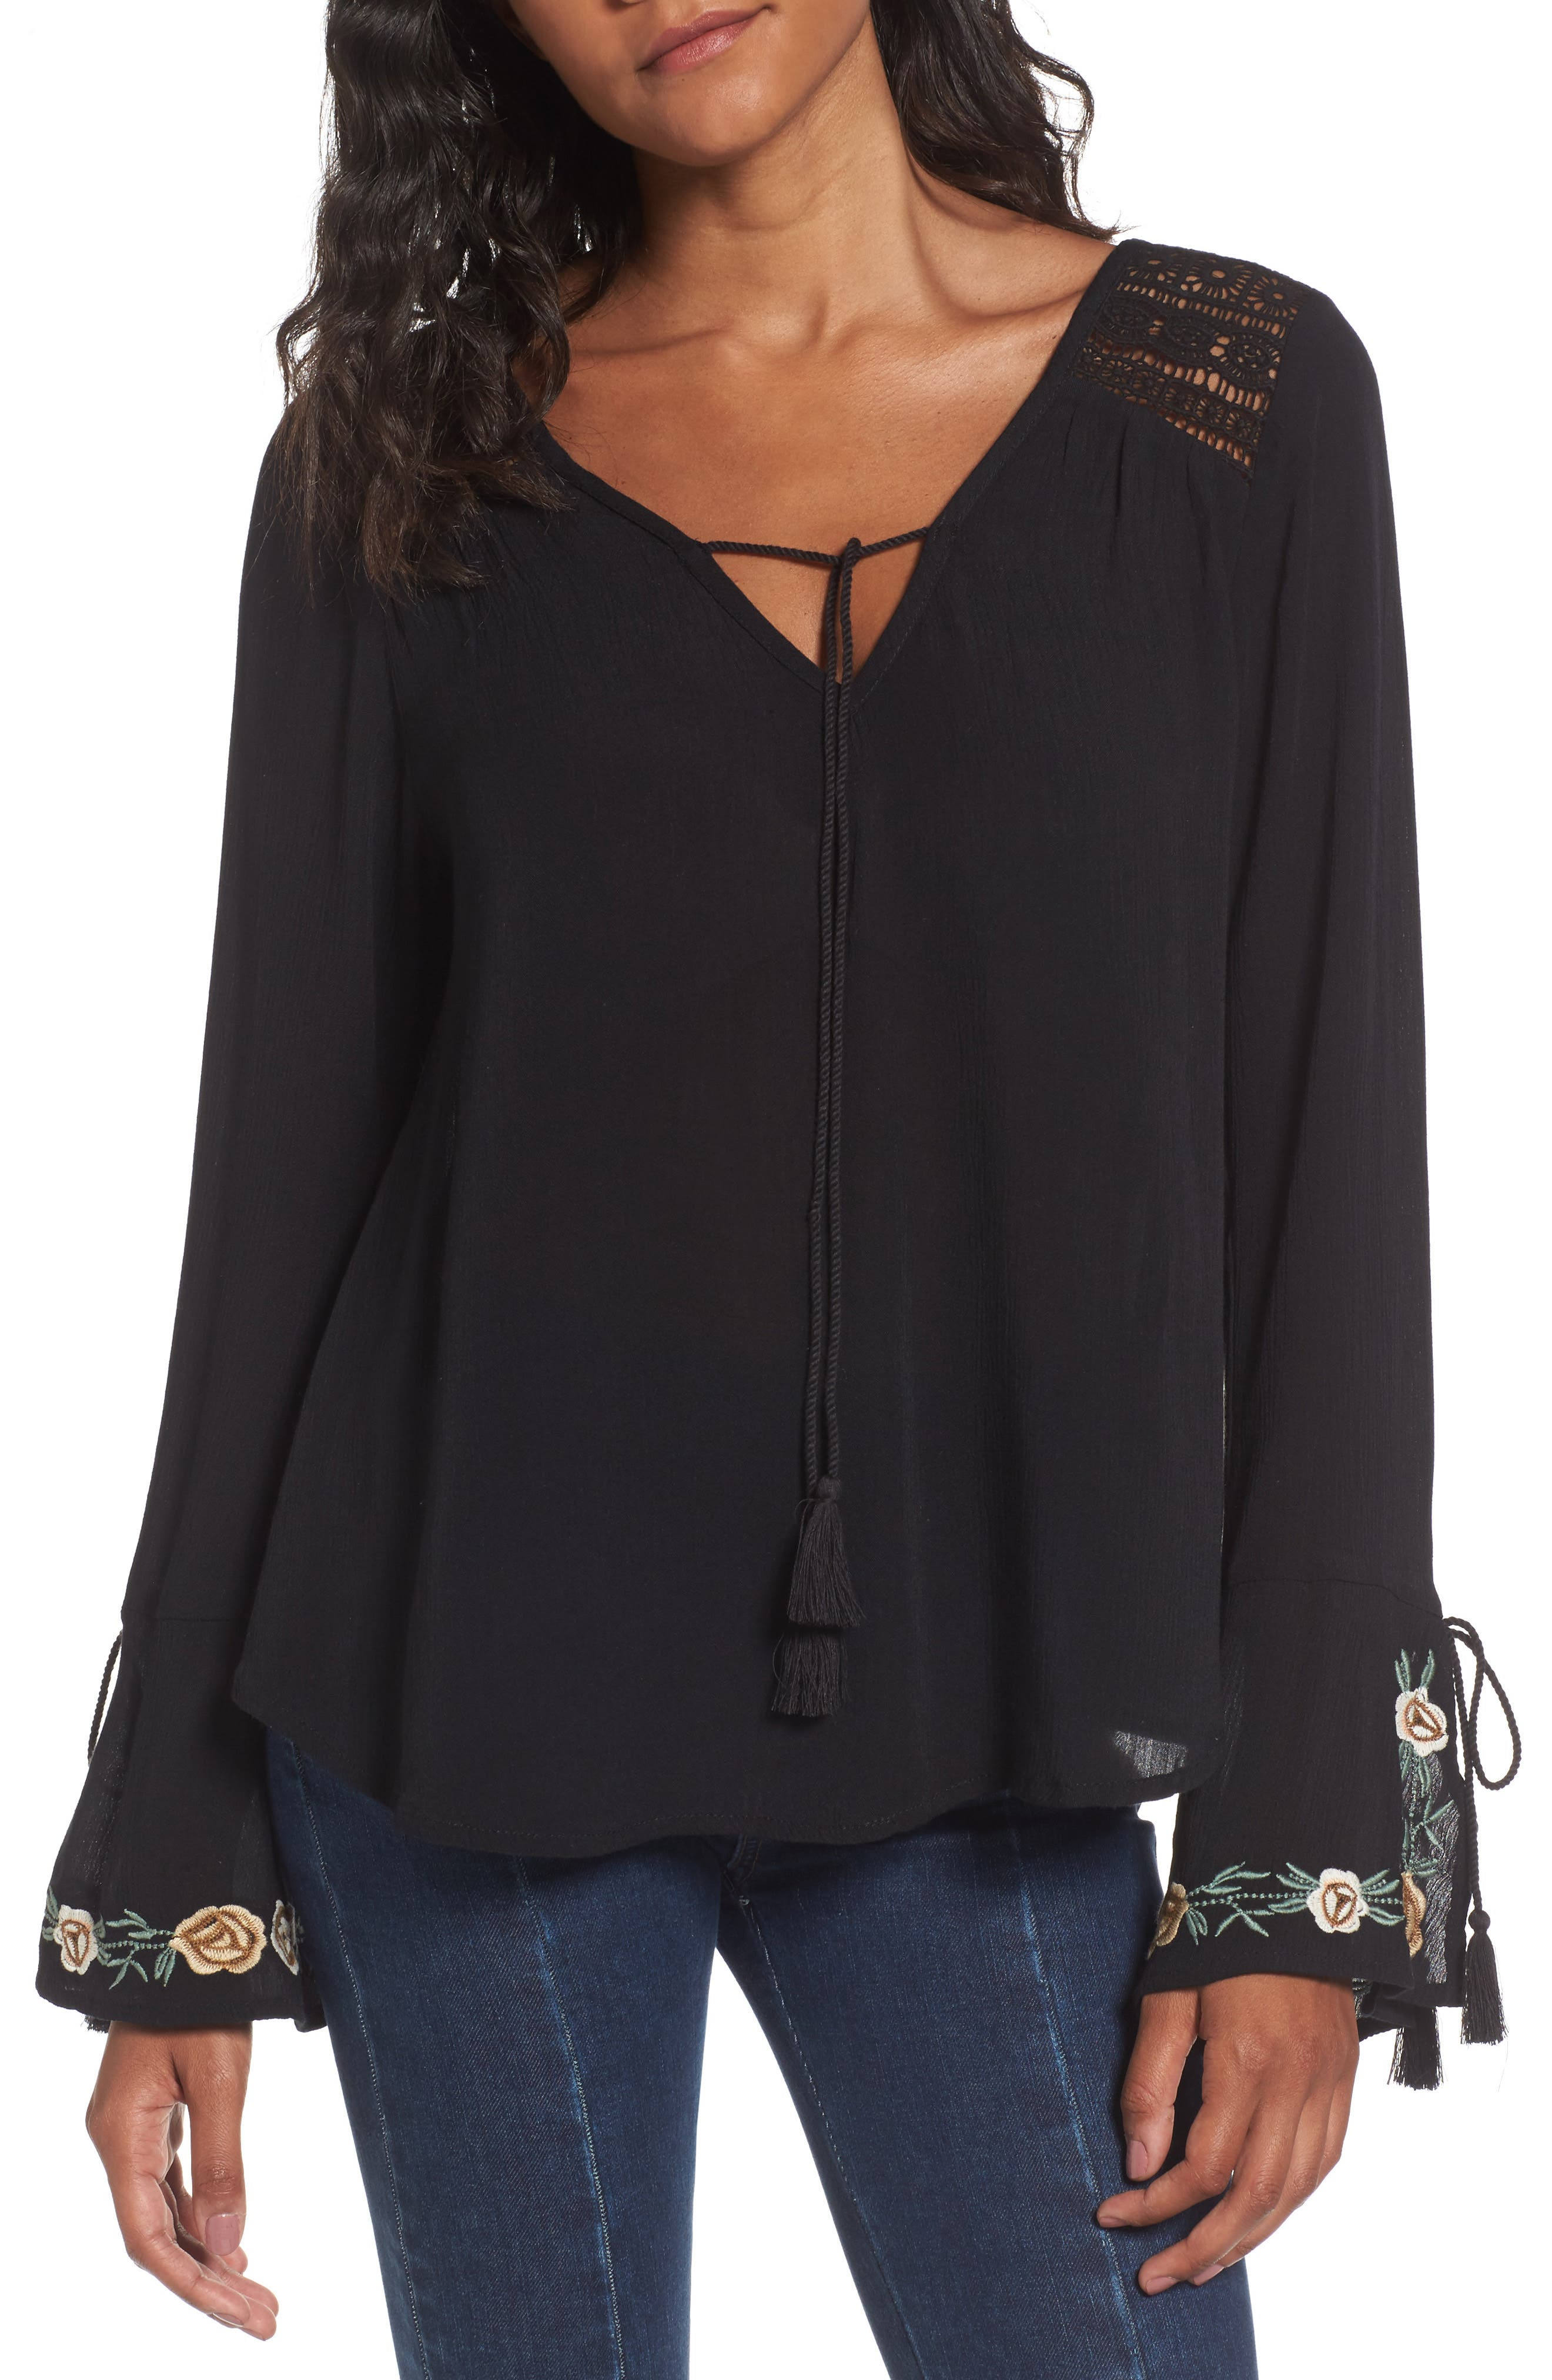 Band of Gypsies Floral Embroidered Top